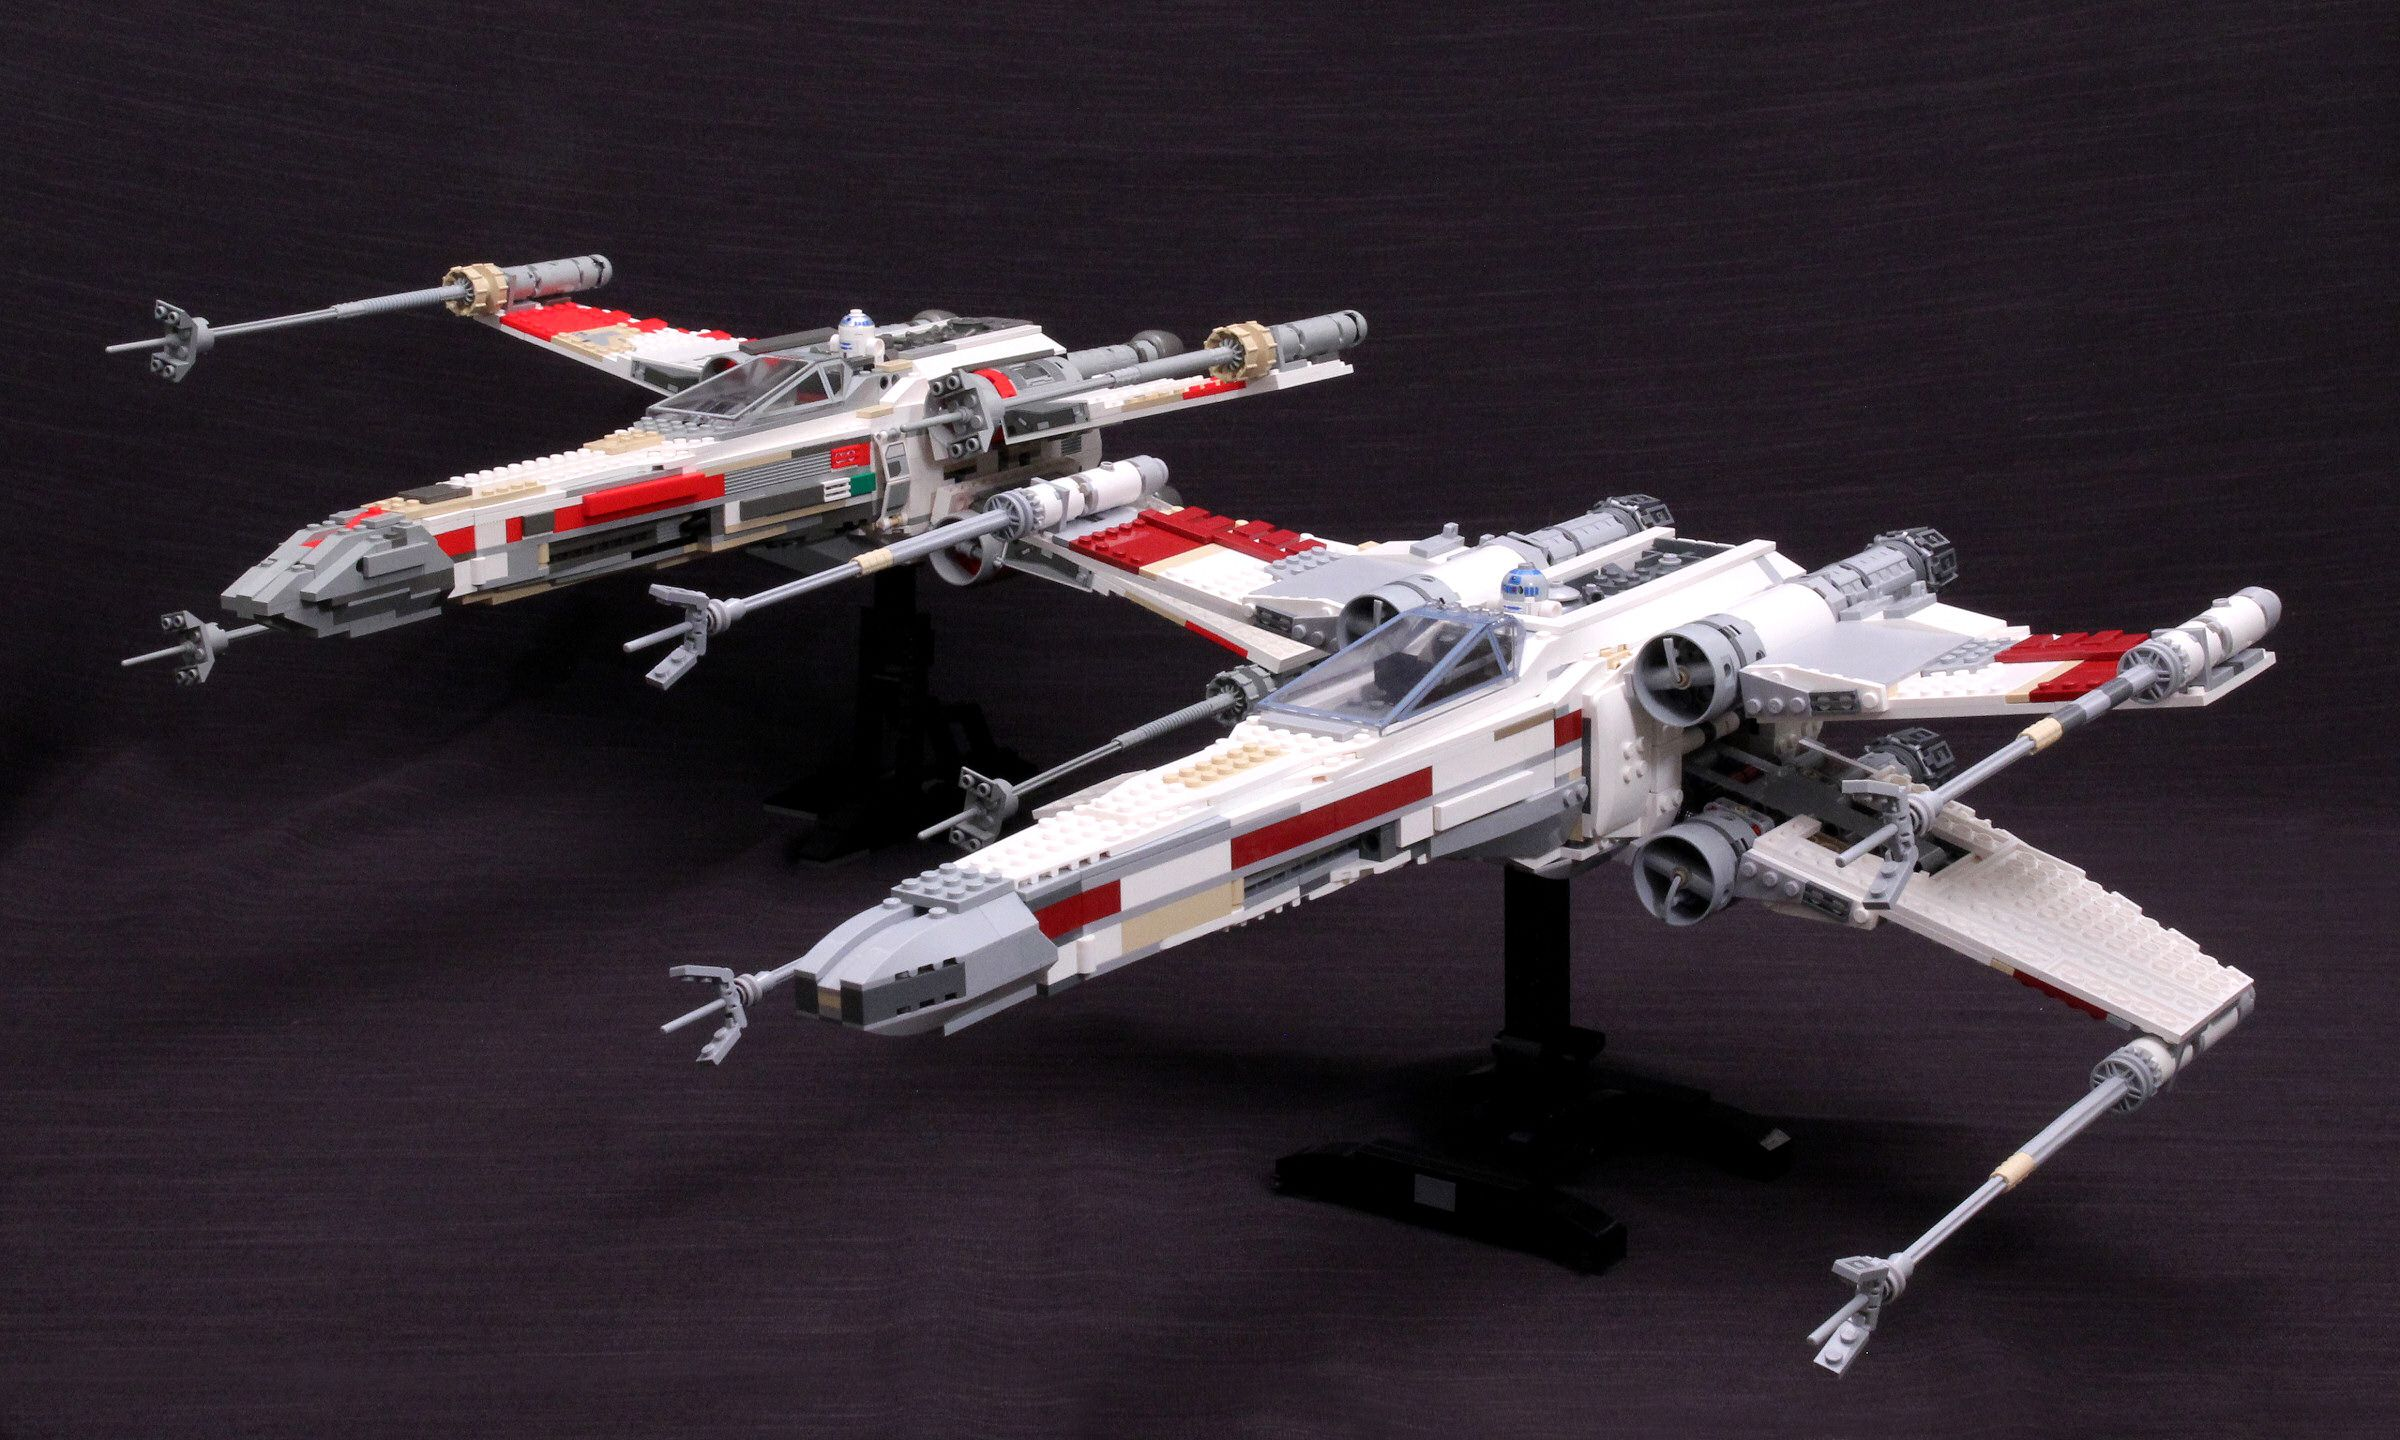 Lego Star Wars Side By Side Review 10240 Red Five X Wing Starfighter And 7191 Ucs X Wing Fighter Lego Star Wars X Wing Starfighter Starfighter